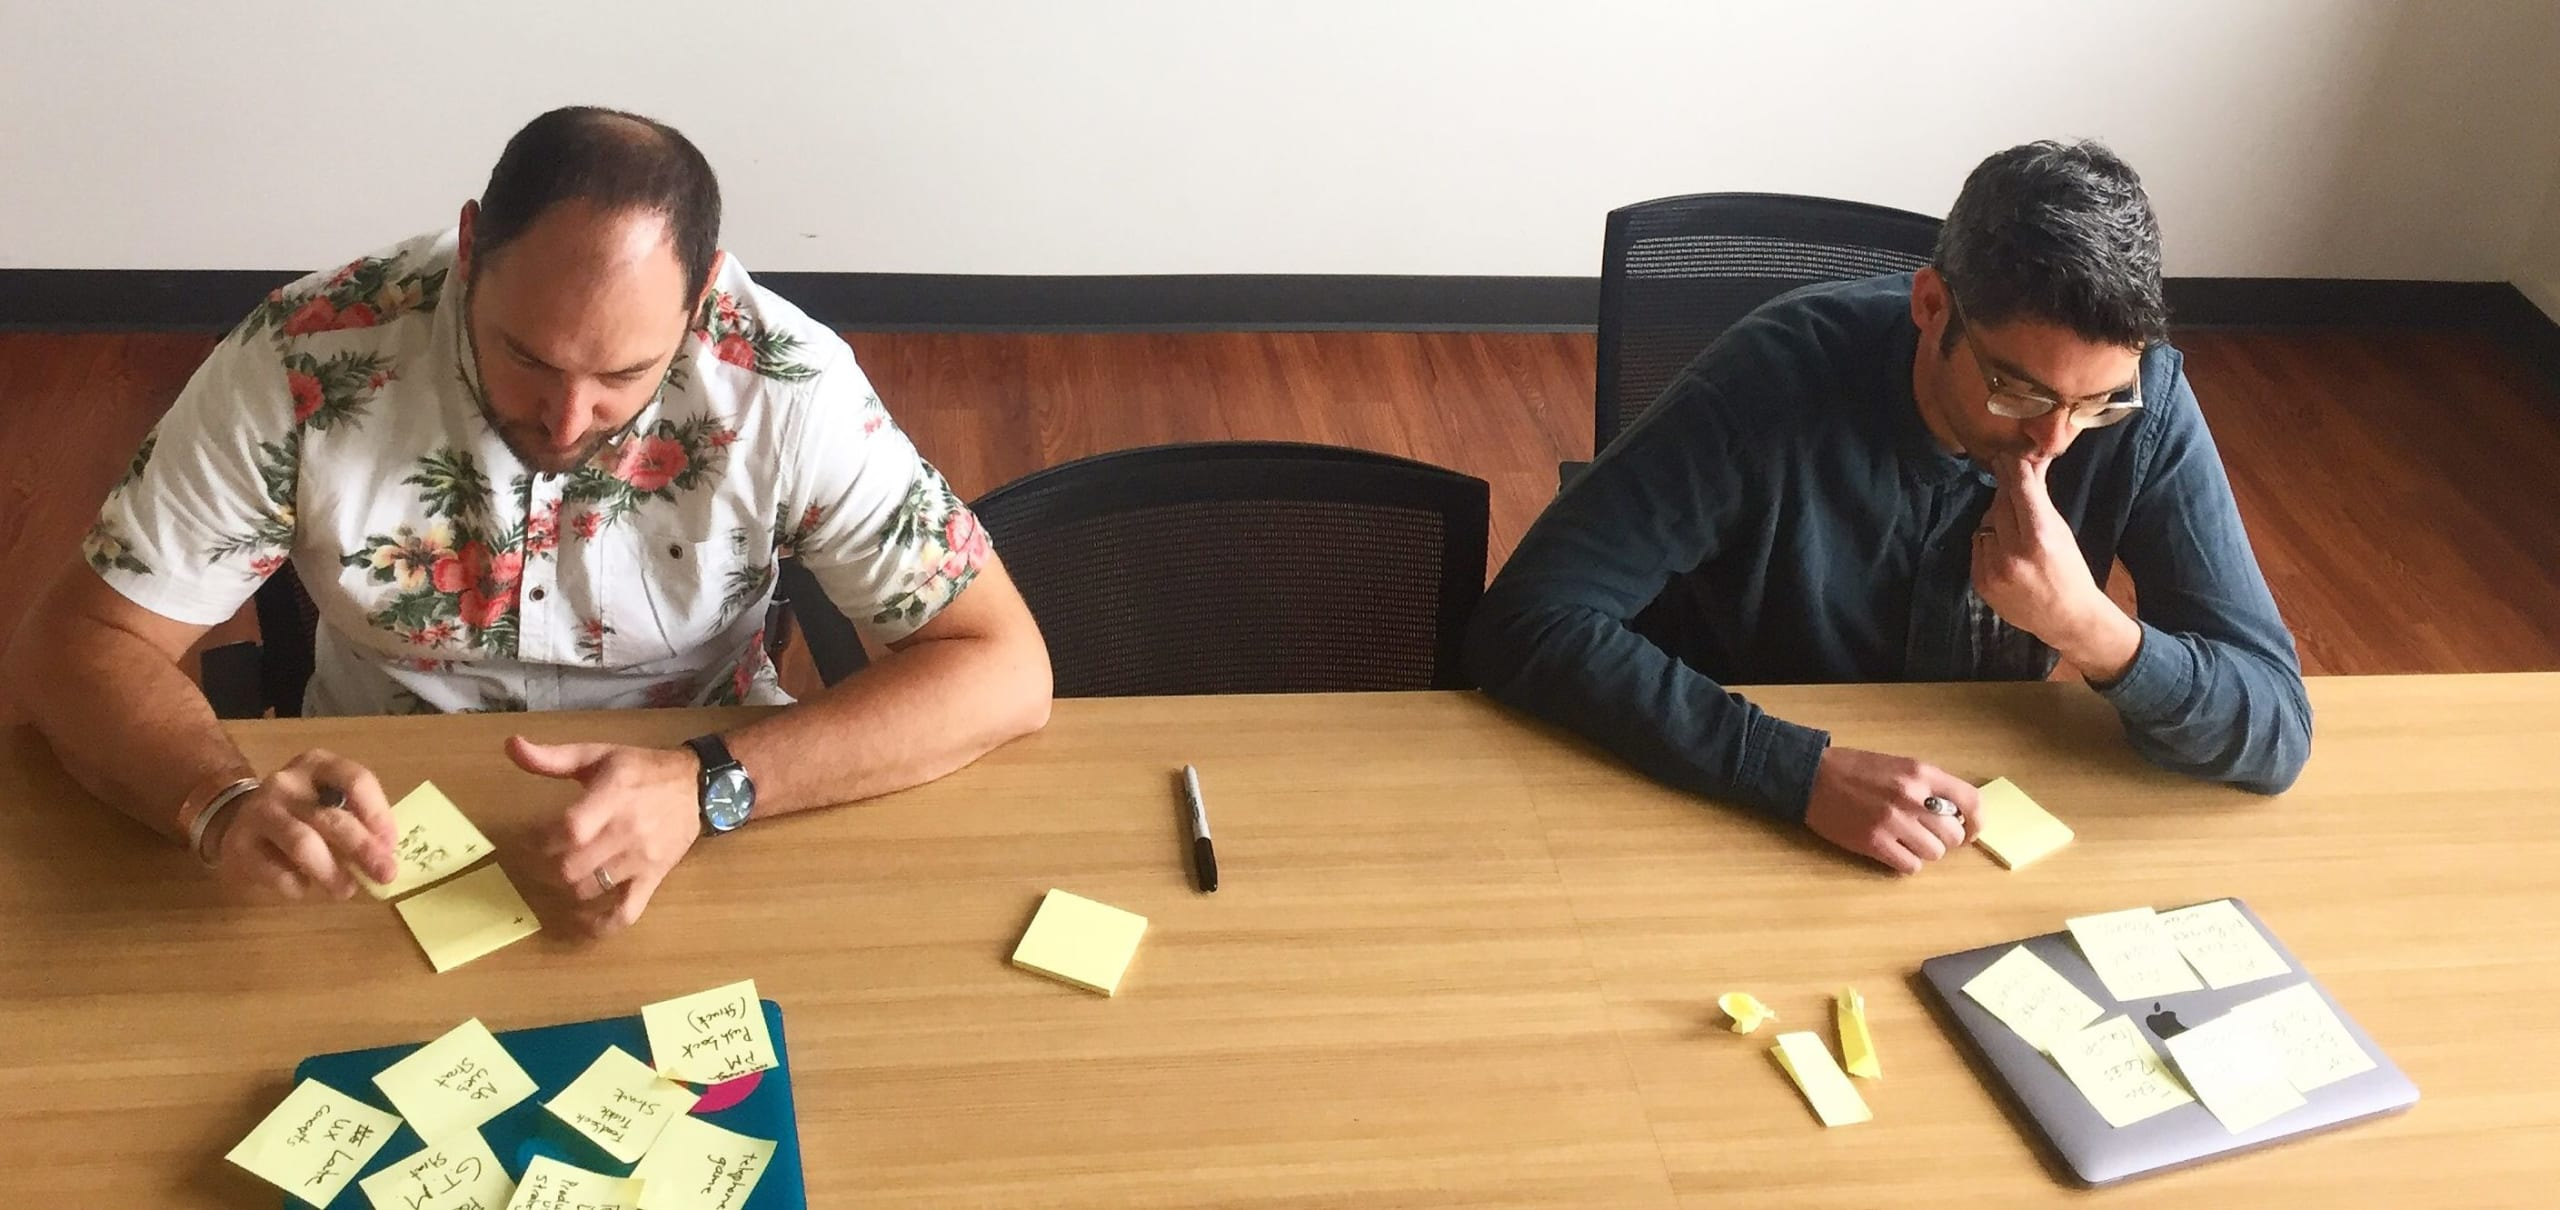 Jed Fugle and John Gentle of roboboogie collaborating in conference room